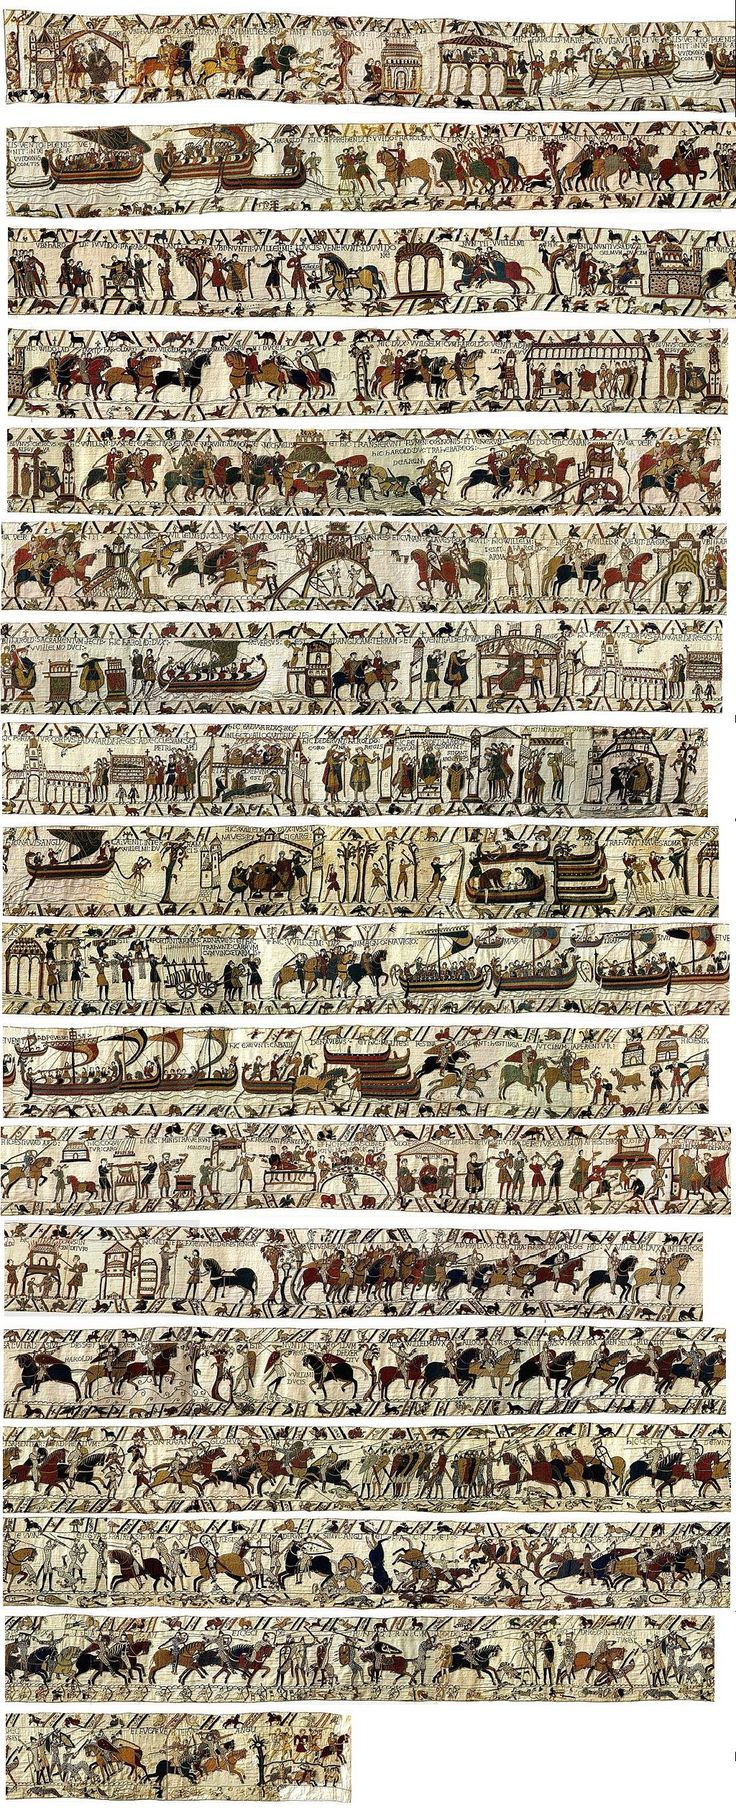 The Bayeux Tapestry - chronicles the events leading up to the Norman conquest of England. It is actually and embroidered cloth and is nearly 230 feet long. The fact that it survived in such amazing shape since it's creation (no one knows exactly when but it is mentioned in the 1400's) is incredible... Been there!